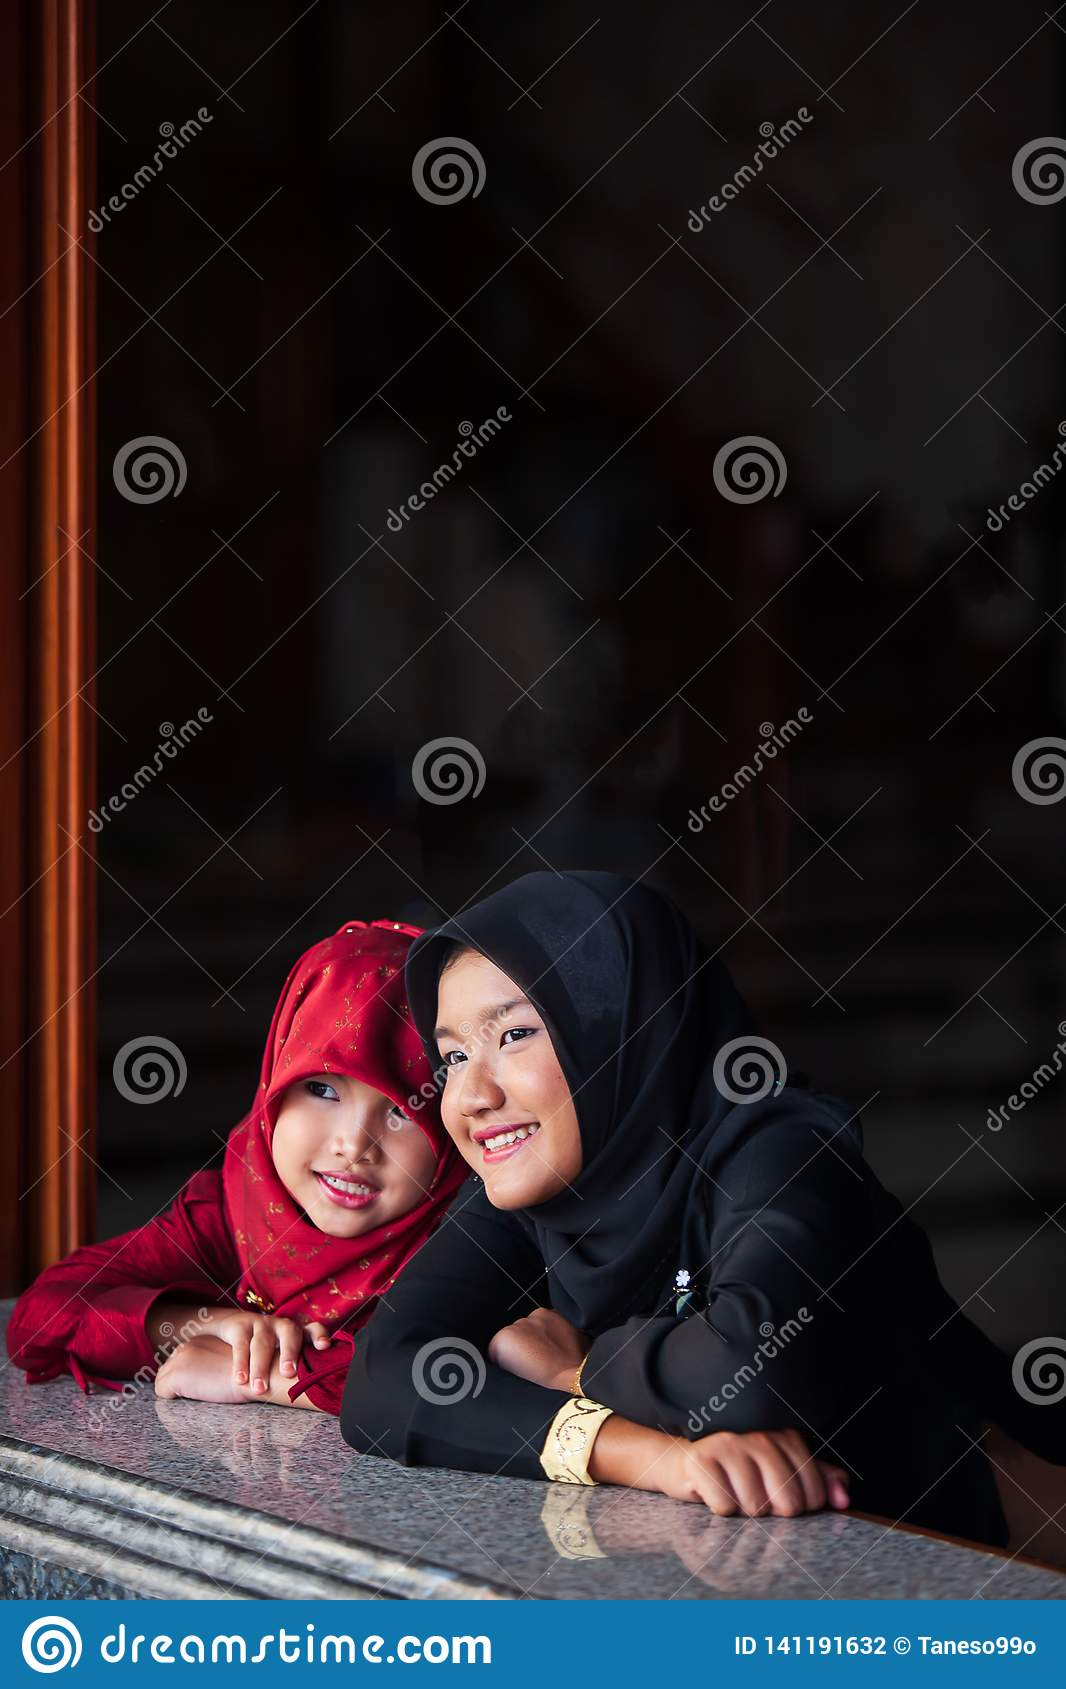 Couple adorable muslim girl in traditional clothing, black and red hijab or niqab and abaya smiling and watching out the window.